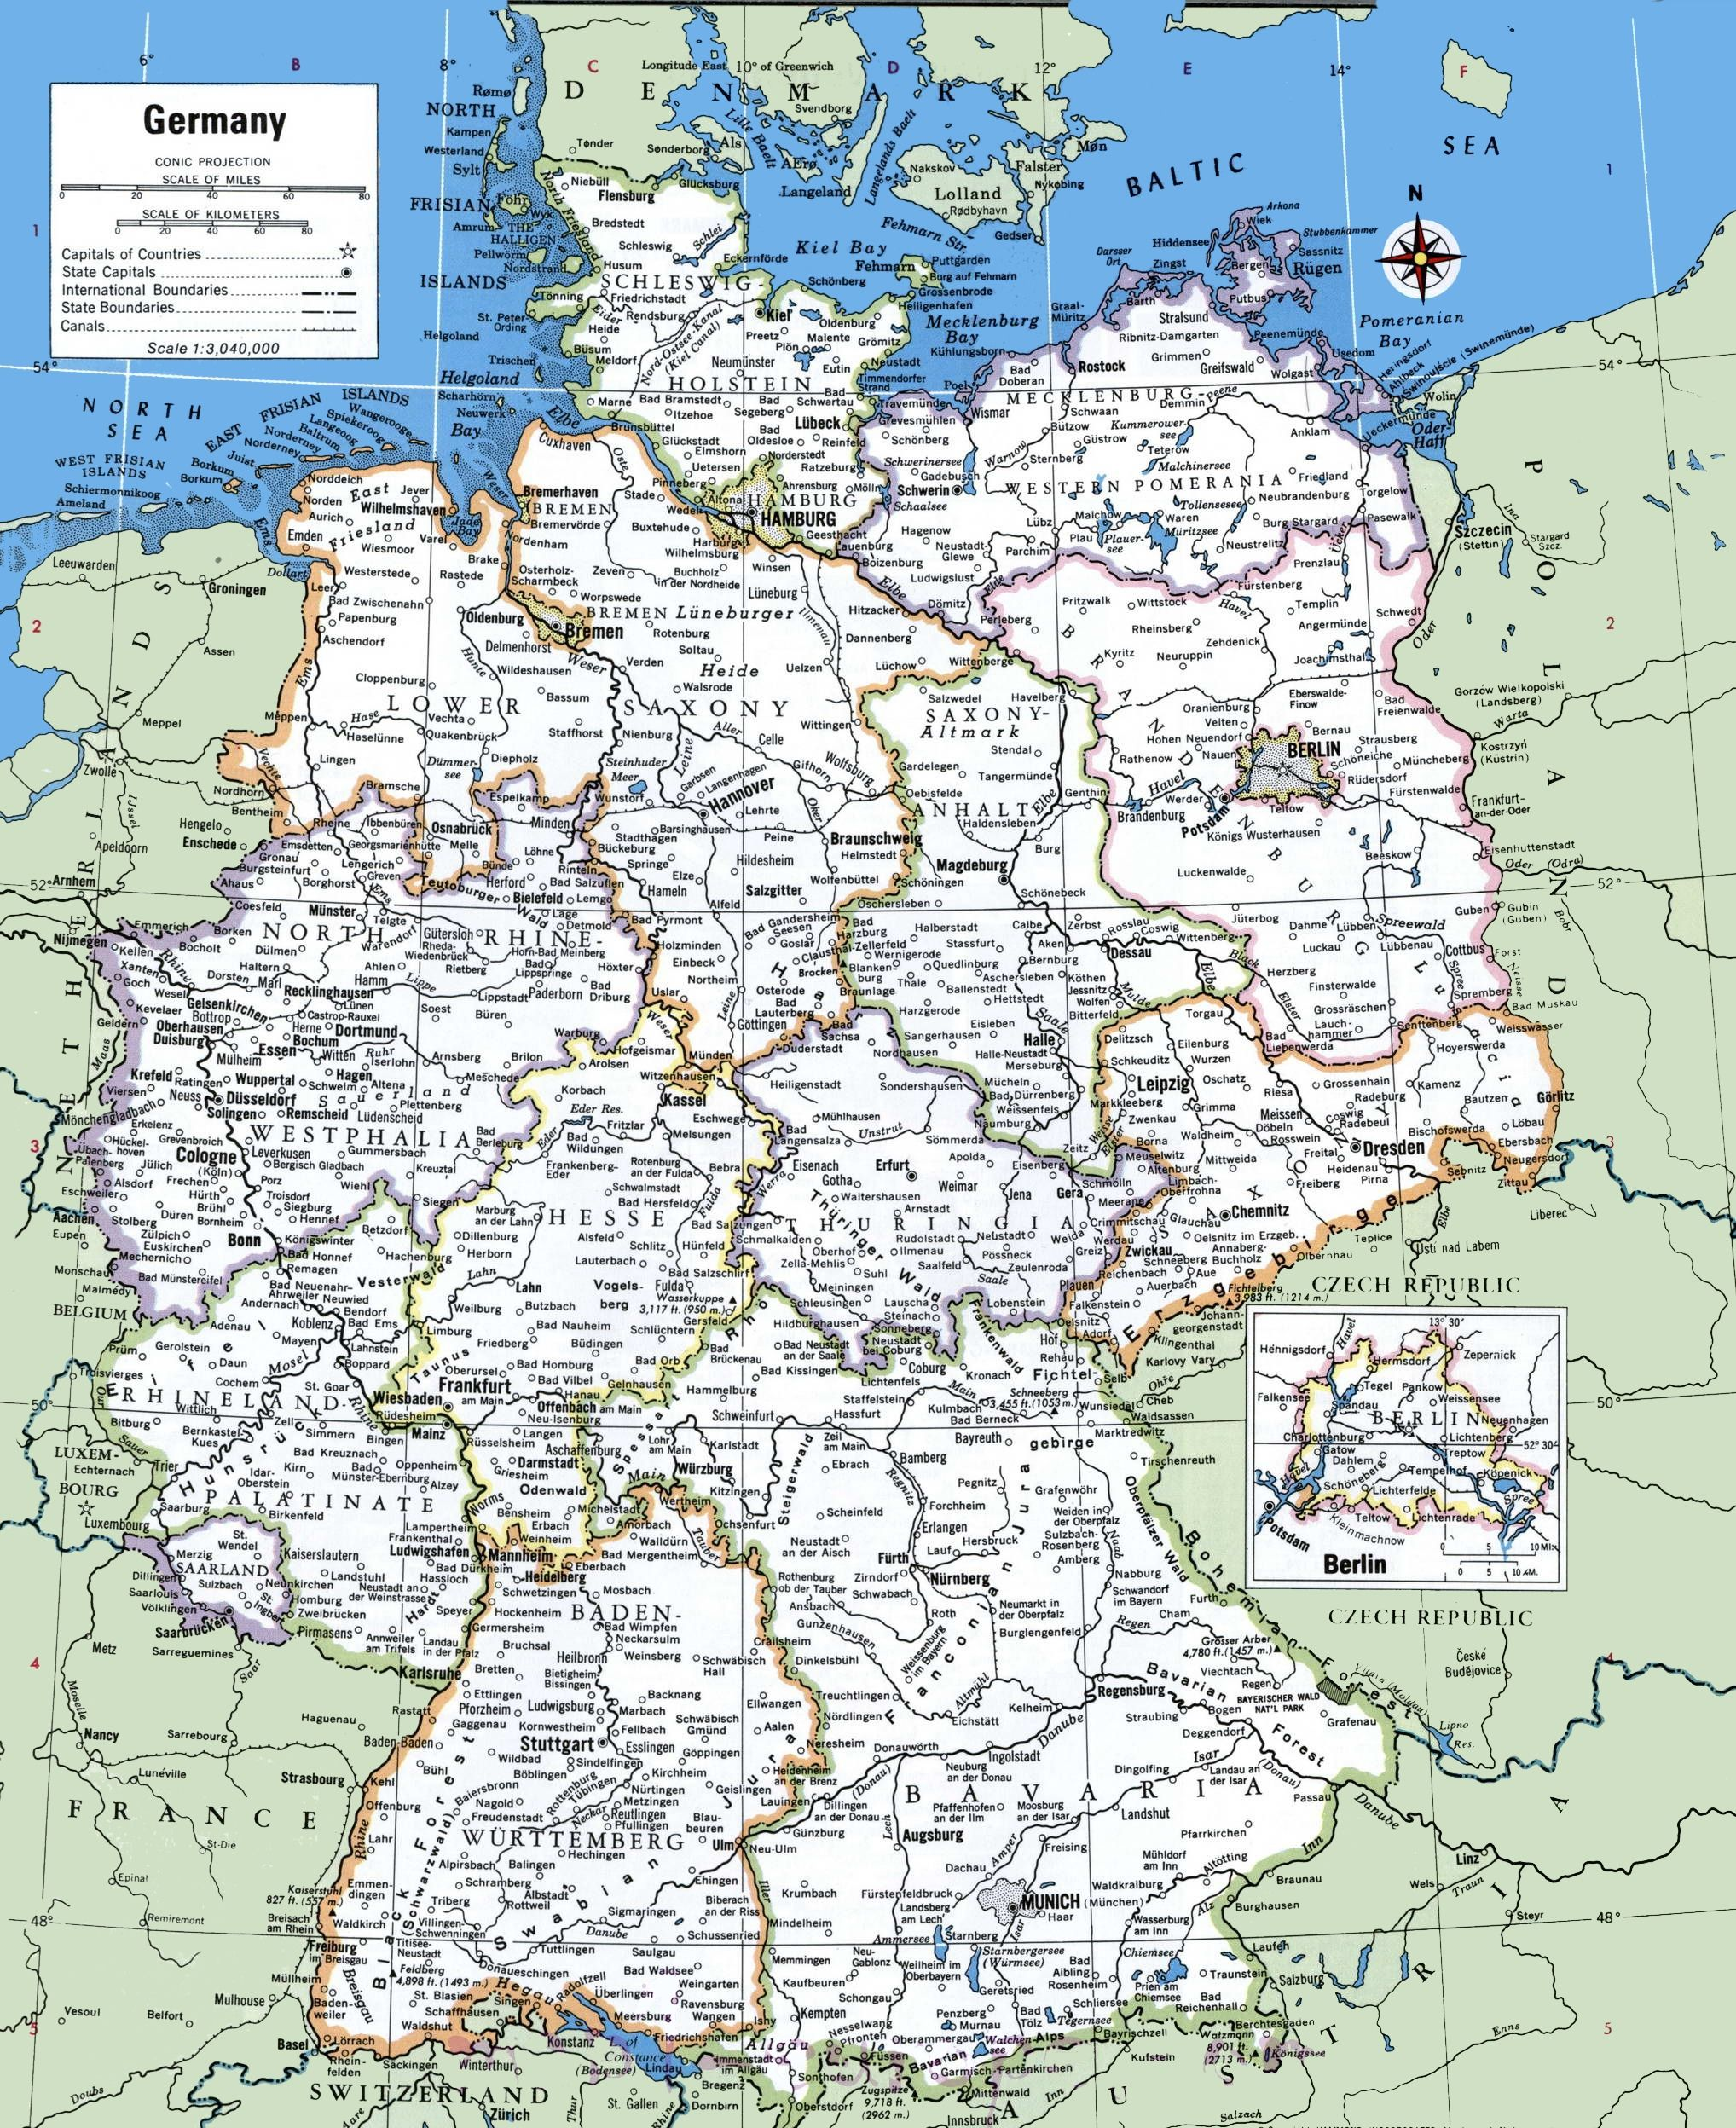 Maps Of Germany And Switzerland : germany, switzerland, Germany, Cities, Towns, World, Switzerland